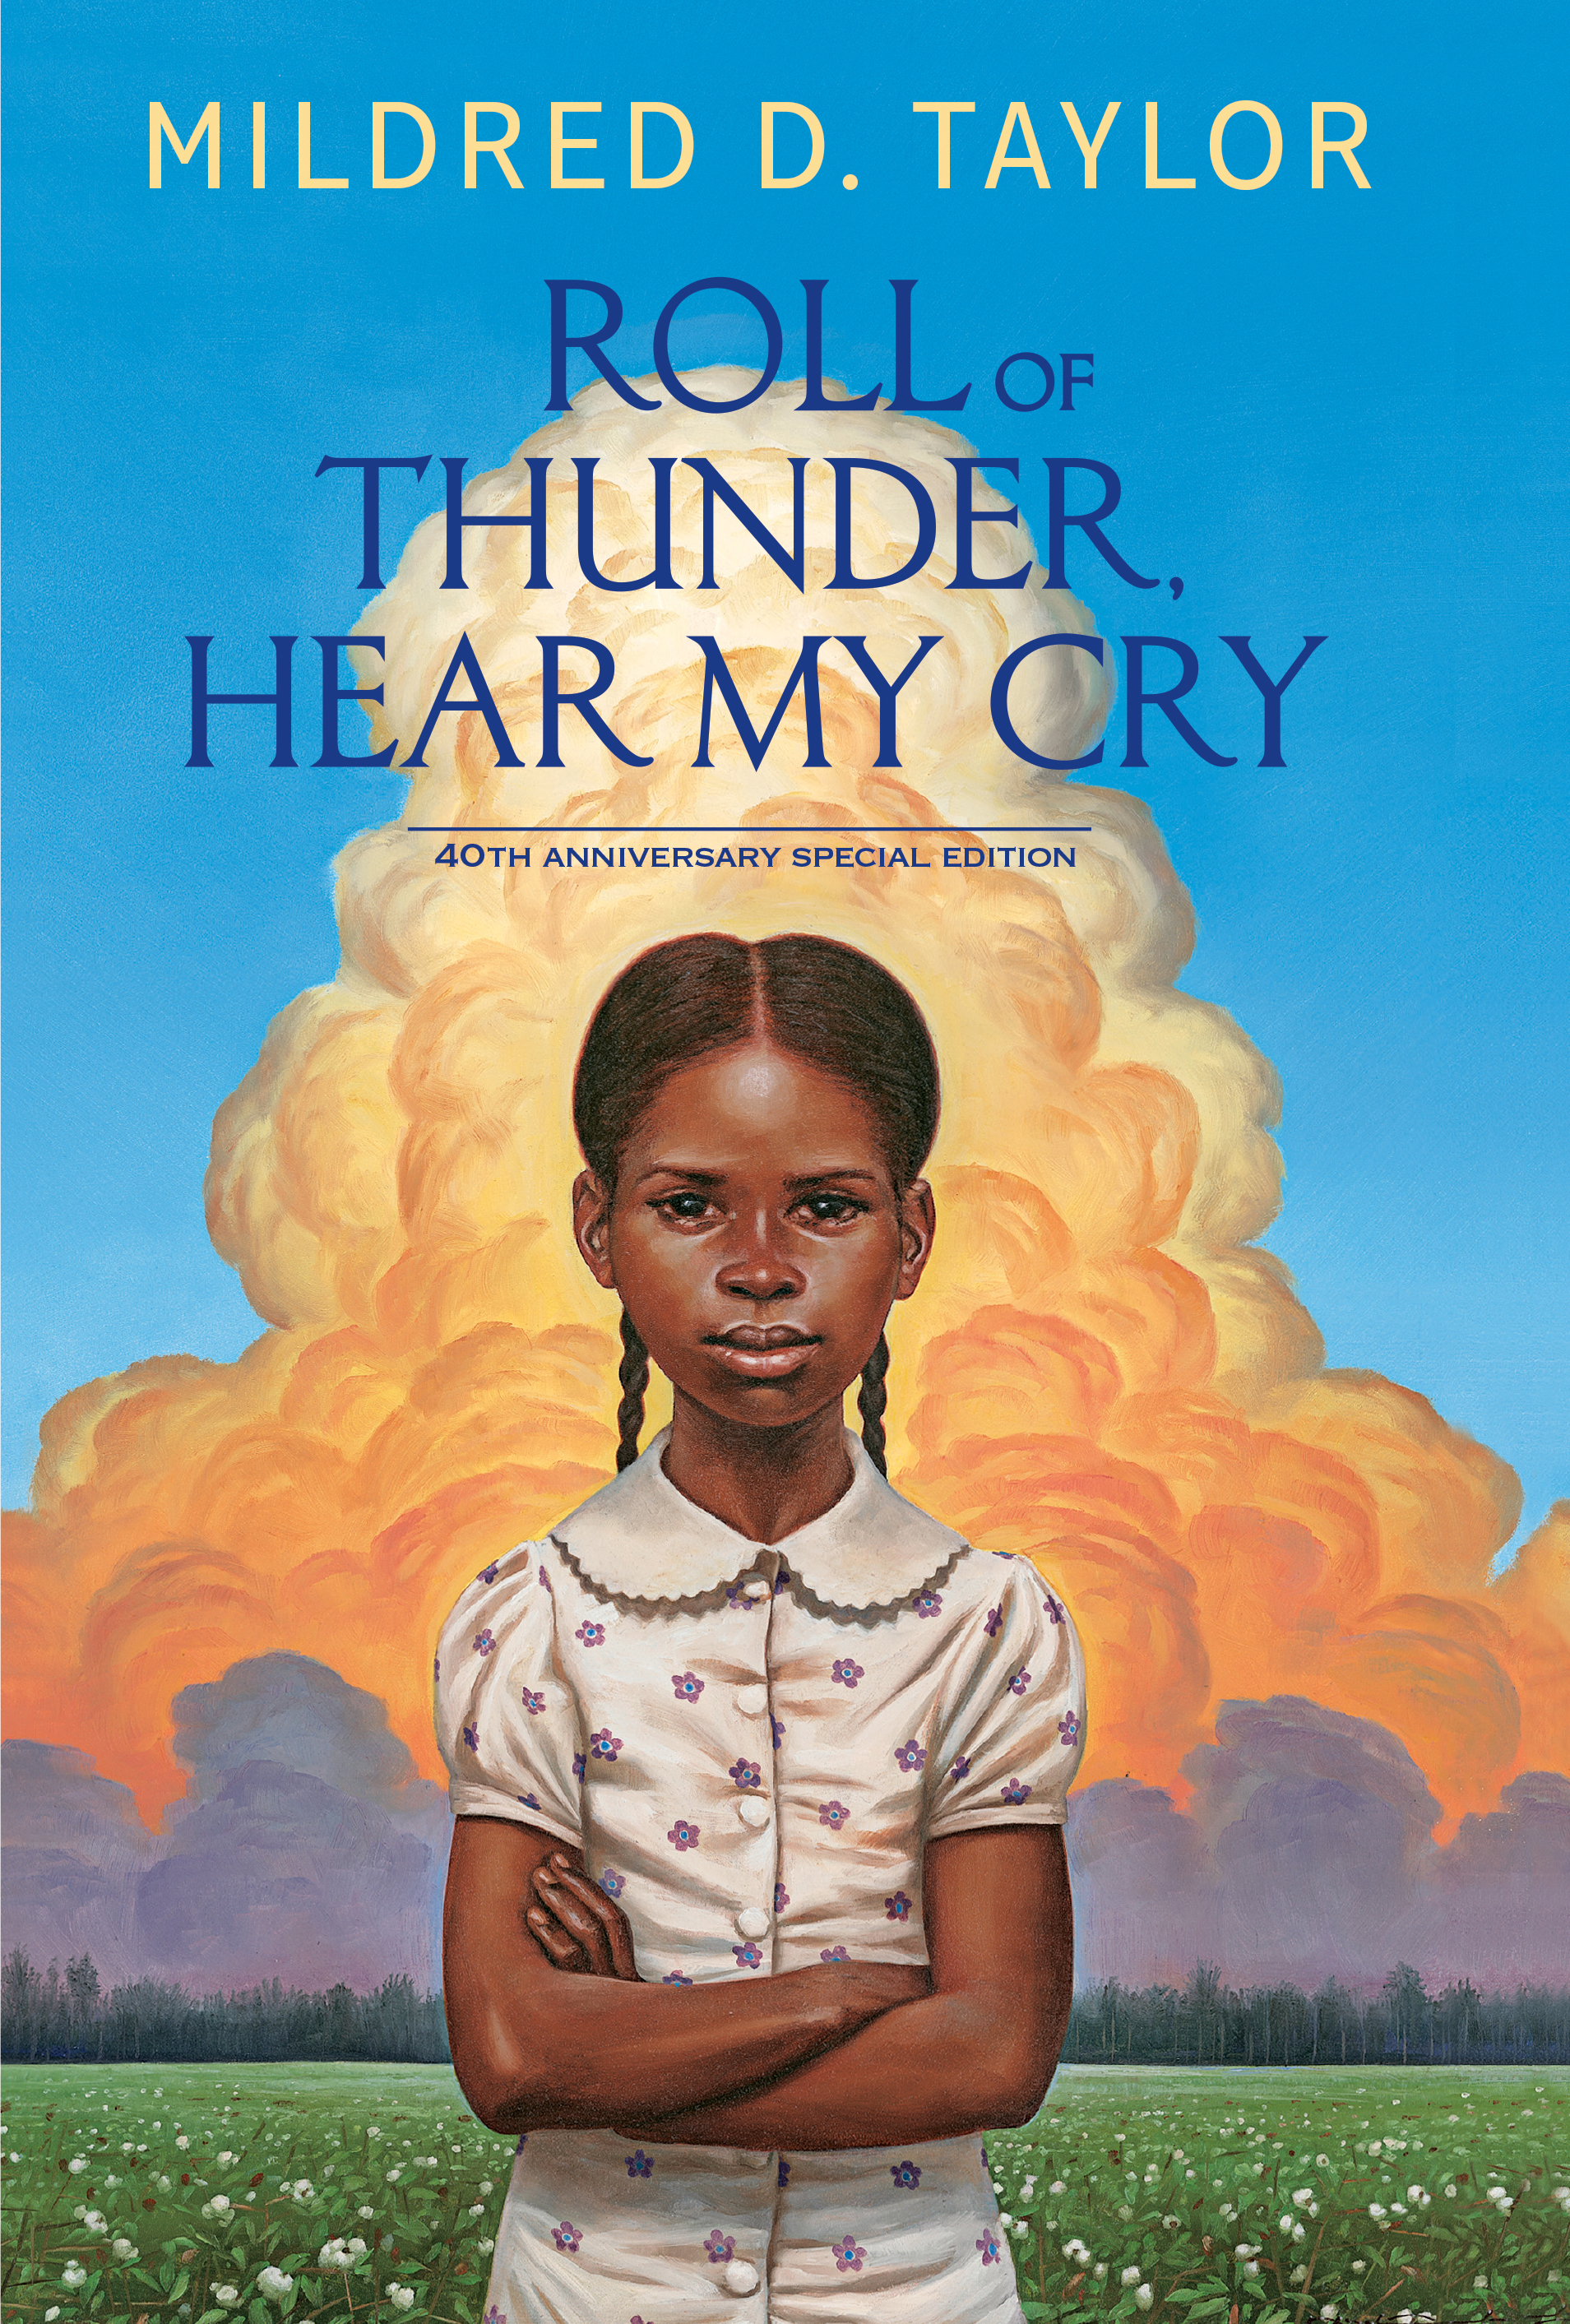 Roll of Thunder, Hear My Cry: 40th Anniversary Special Edition